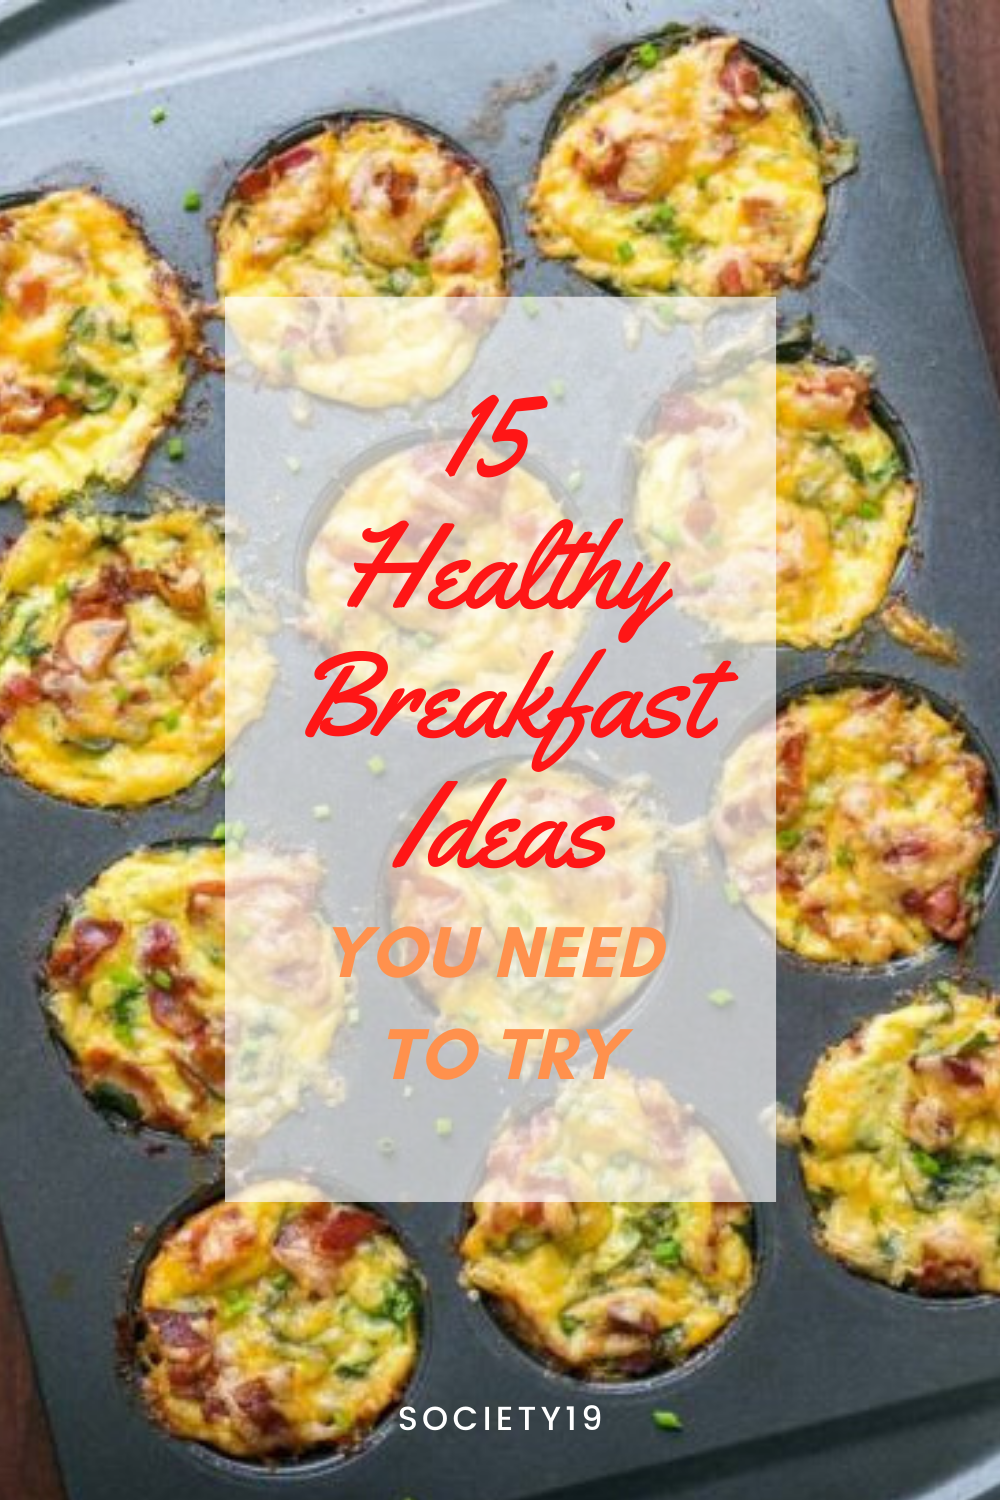 15 Healthy Breakfast Ideas You Need To Try